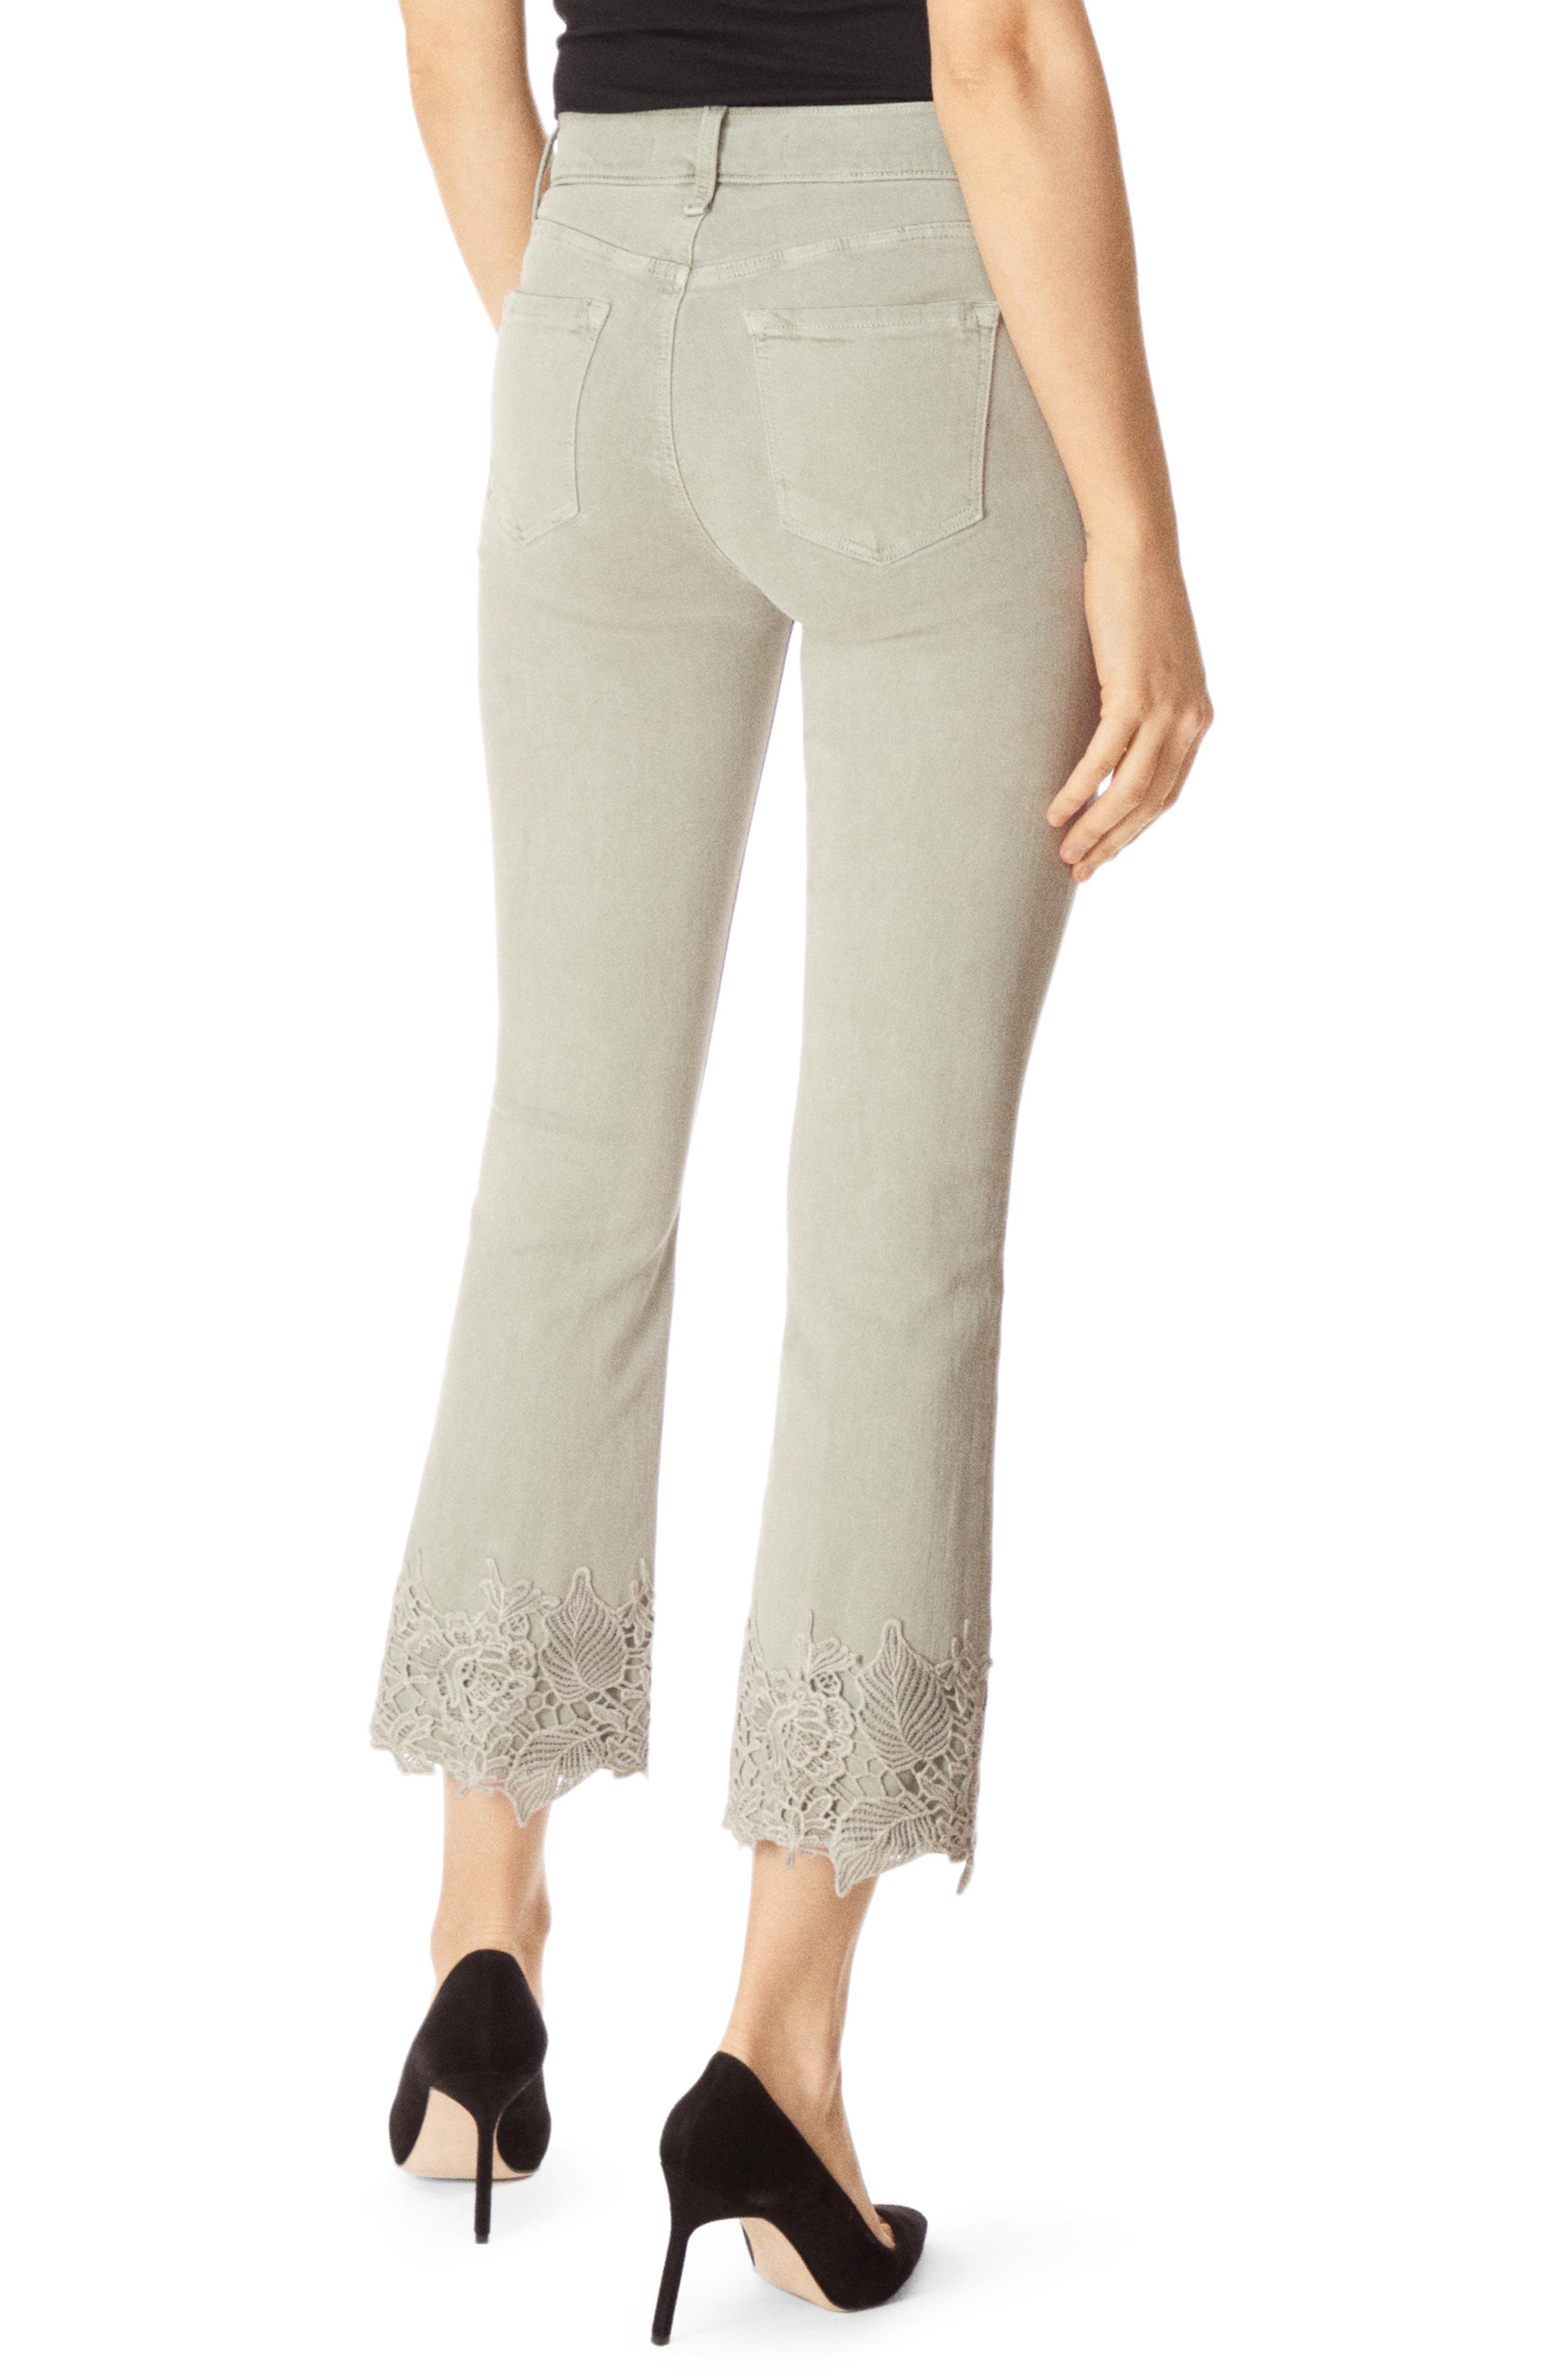 J BRAND,                             Selena Crop Bootcut Jeans,                             Alternate thumbnail 2, color,                             FADED GIBSON